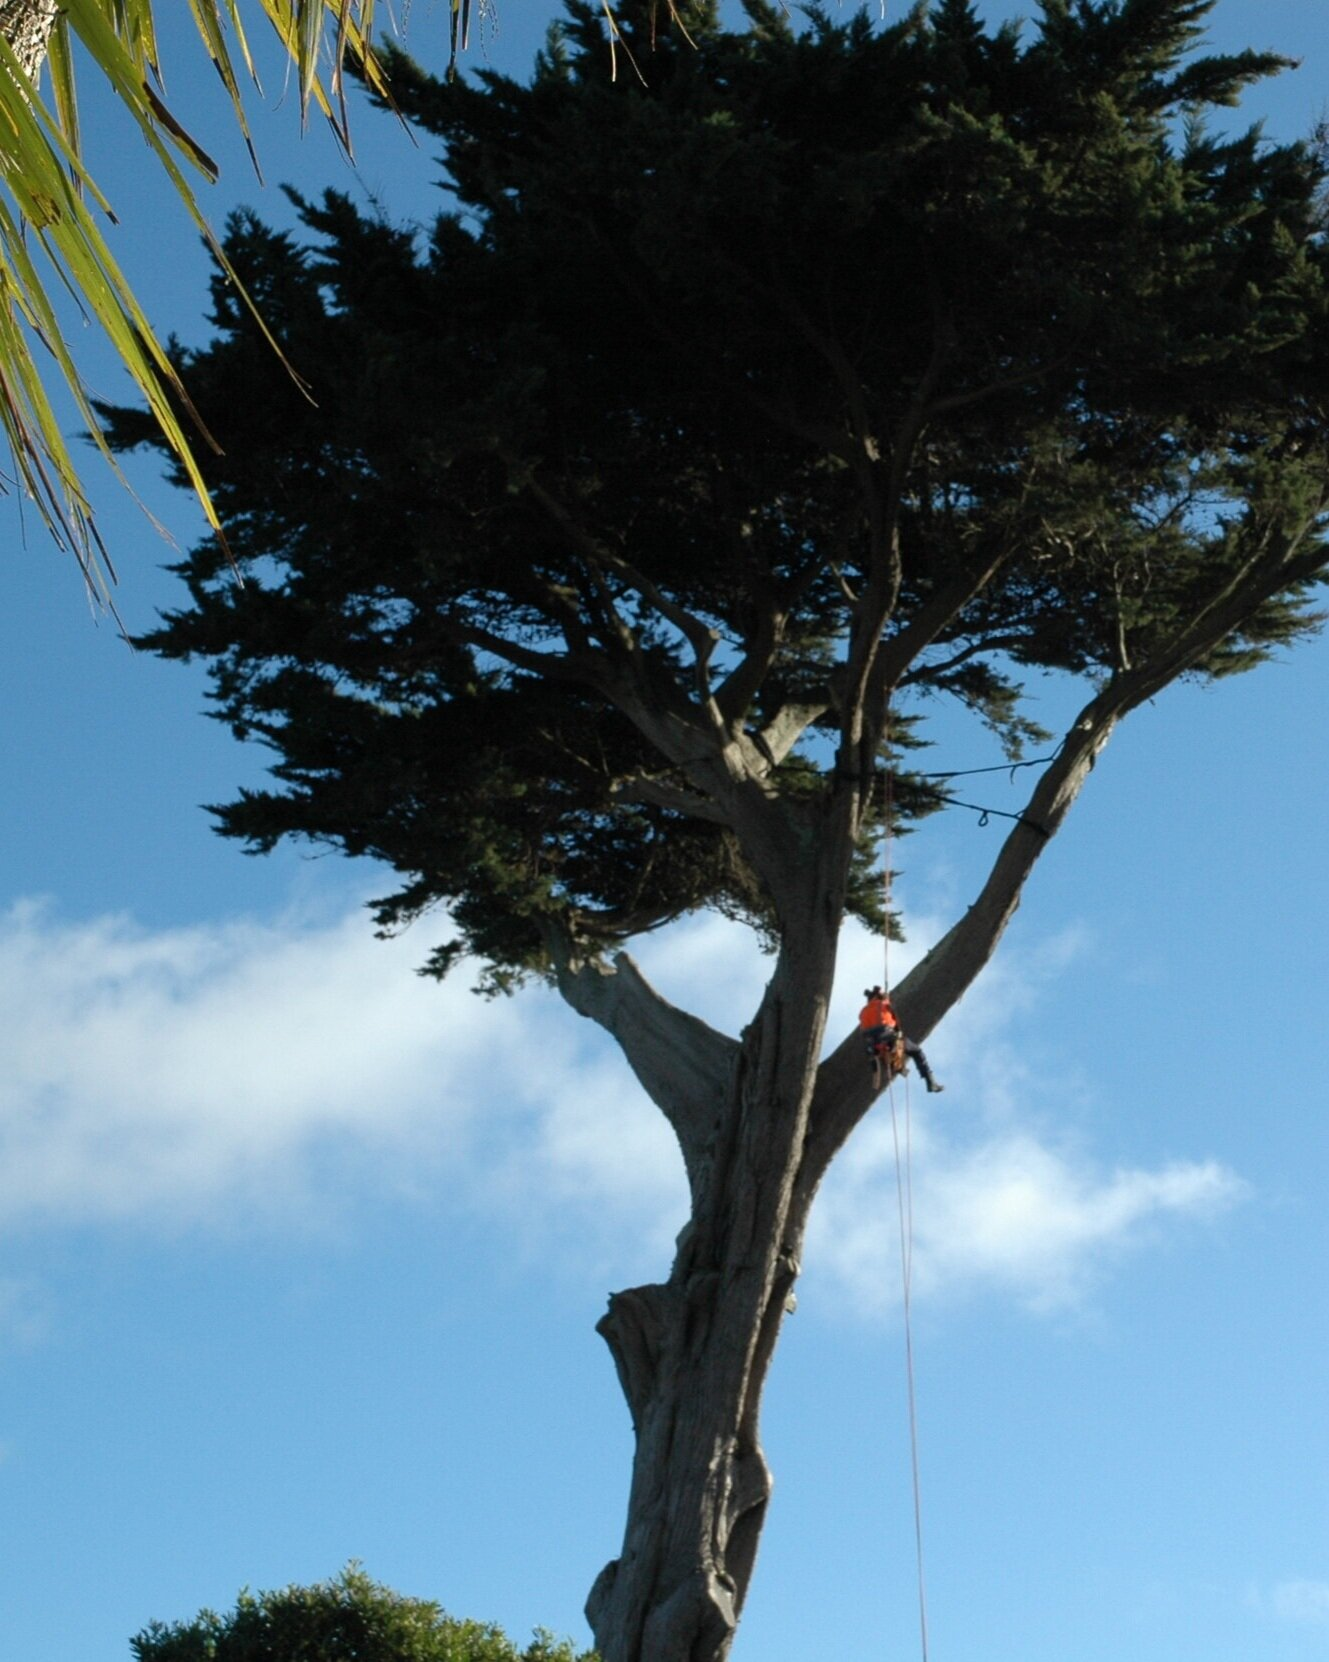 About Us - We are a locally owned and operated company and we pride ourselves in  our ability to offer advice, conduct evaluations, & complete our  works within a reasonable timeframe and to the best arboricultural standards. We also pride ourselves in our ability to leave a clean &  tidy site with minimal environment impacts, behind us.Across the Wellington Region Coastal Tree Services Wellington Ltd can provide services such as tree removal & trimming (crown reduction, crown thinning, crown lifting and formative pruning), tree bracing / cabling, pruning, hedging & hedge trimming, stump grinding, clearing, chipping, mulching,  pesticide spraying and tree report services. We offer these services in  Wellington & the Kapiti Coast, including; Wellington, Lower Hutt,  Upper Hutt, Pukerua Bay, Paekakariki, Raumati, Paraparaumu, Otaihanga,  Waikanae, Peka Peka, Te Horo, Otaki, Manakau, Ohau, and Levin.Our crew continuously train & maintain the best possible  arboricultural standards using well-maintained & modern equipment  & are adept in tree works; from the largest job to the smallest job.Operating with a Qualified Arborist, you can  be assured that all work will be carried out the highest possible best  practice & safety standards, with the health of the tree or shrub  first & foremost, and minimal environmental impacts.With our free quote system you can be assured that we will offer the  best advice available, taking into account your requirements, the local  environment & the health of the surrounding area.You can also feel assured by the fact that the individual who comes  and gives you the quote, will be onsite to do the work. What this means  is that you can feel confident that you don't need to explain the works  once more and that any particular concerns you expressed will be taken  into consideration.